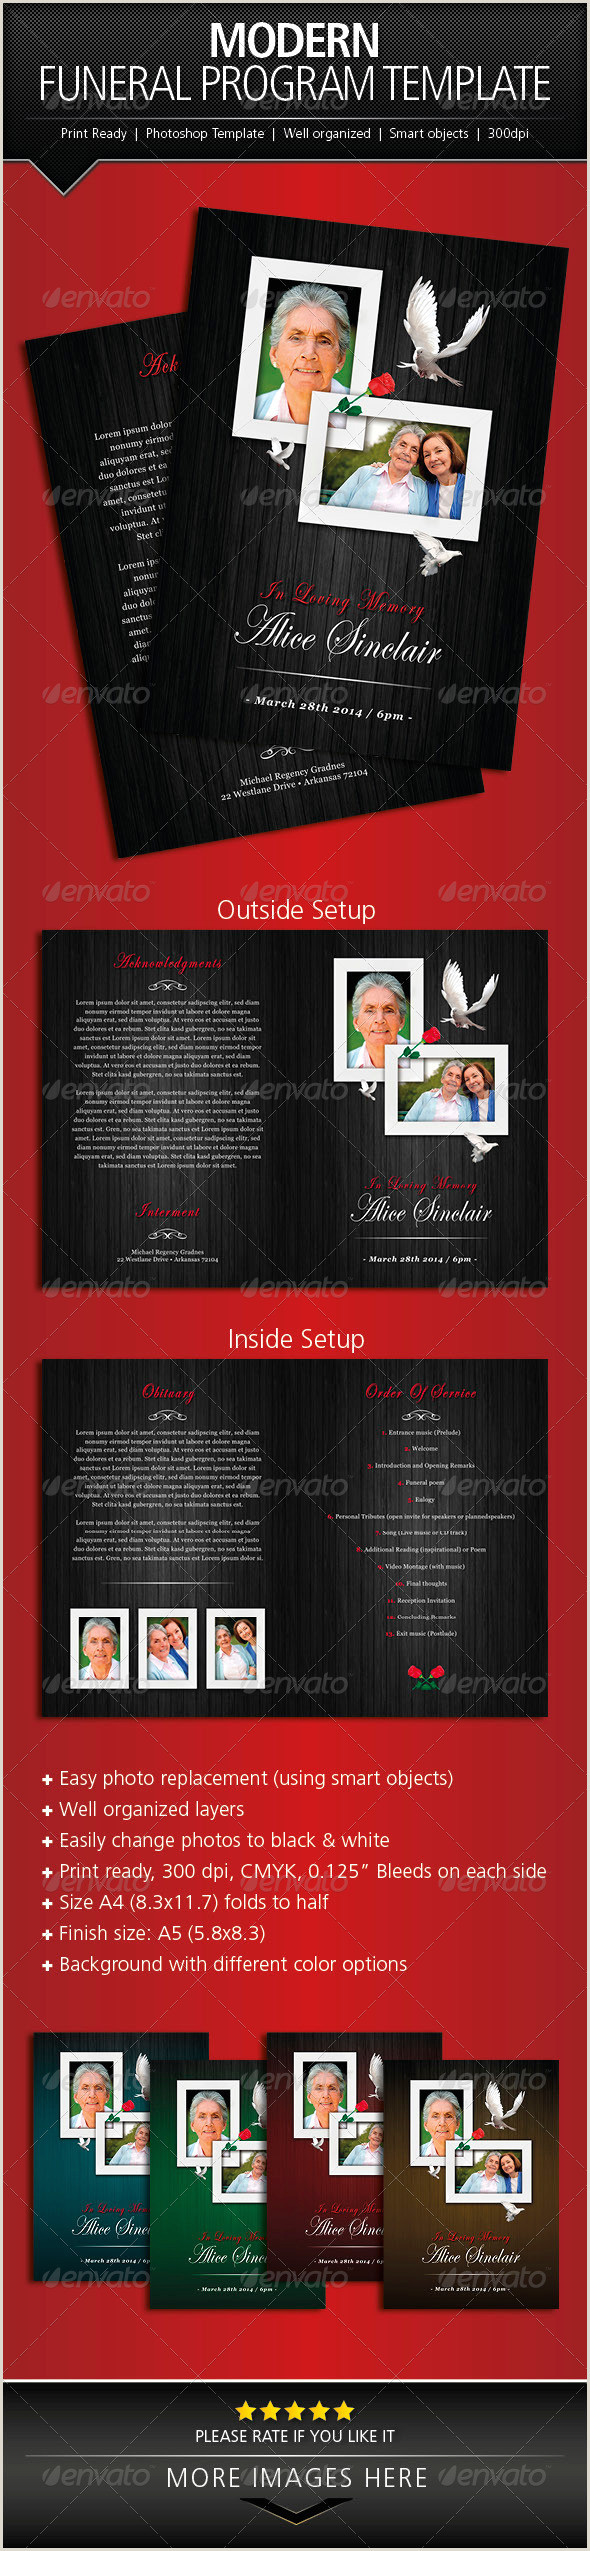 Funeral Program Template Indesign Funeral Programs Template Free Graphics Designs & Templates